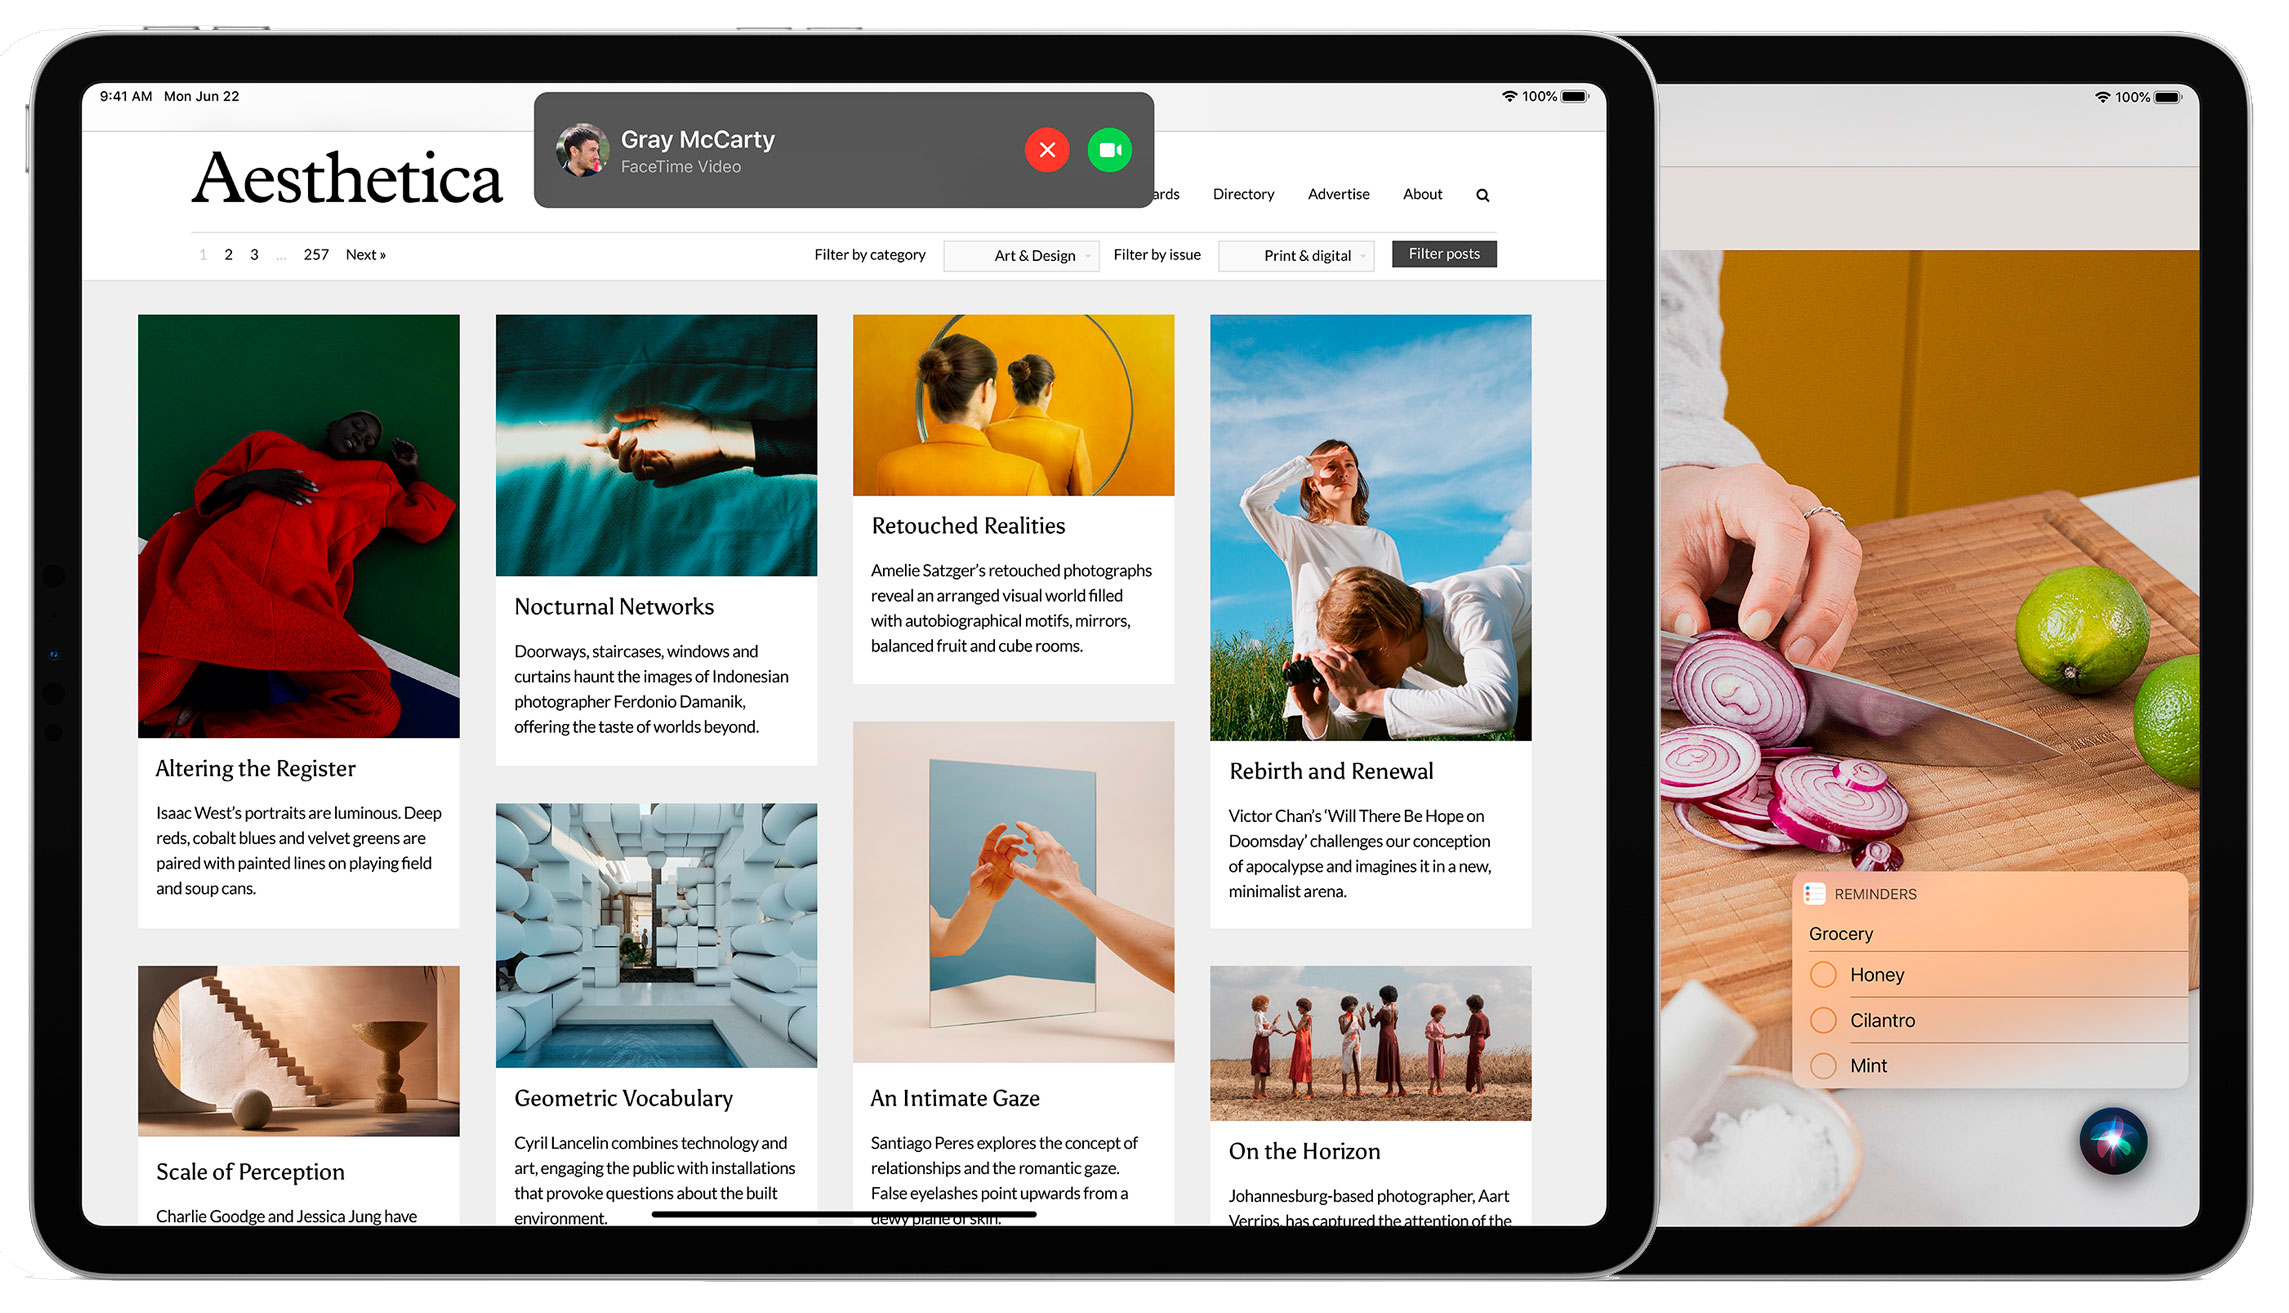 https://www.macfreak.nl/modules/news/images/zArt.iPadOS14SiriTelephoneCallCompact.jpg